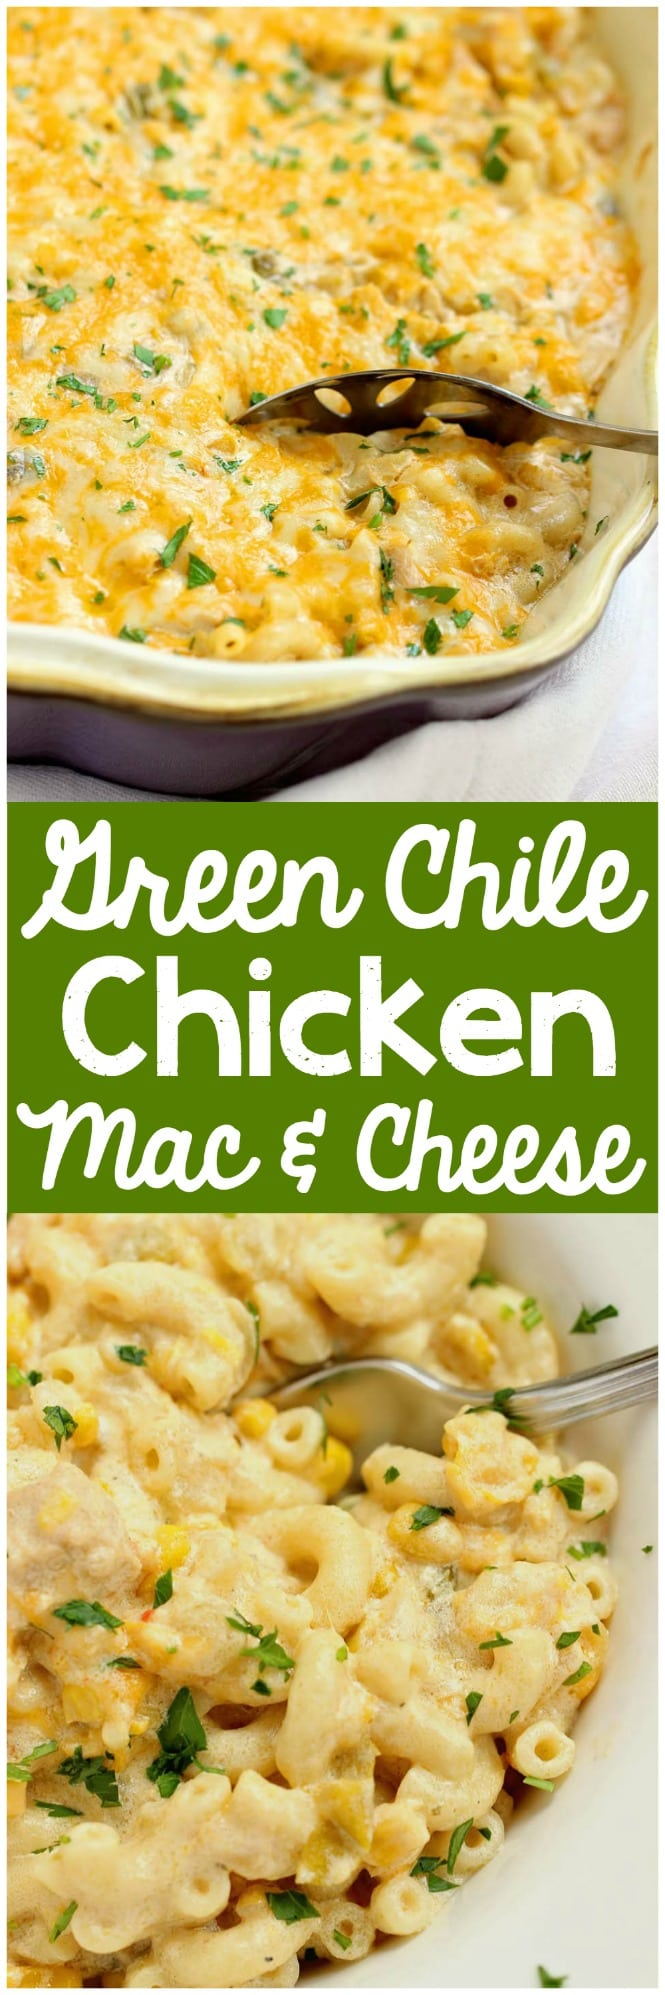 Green Chile Chicken Mac & Cheese - This hearty all-in-one macaroni and cheese dinner idea is filled with chicken, green chiles, corn, and of course all the creamy cheese!